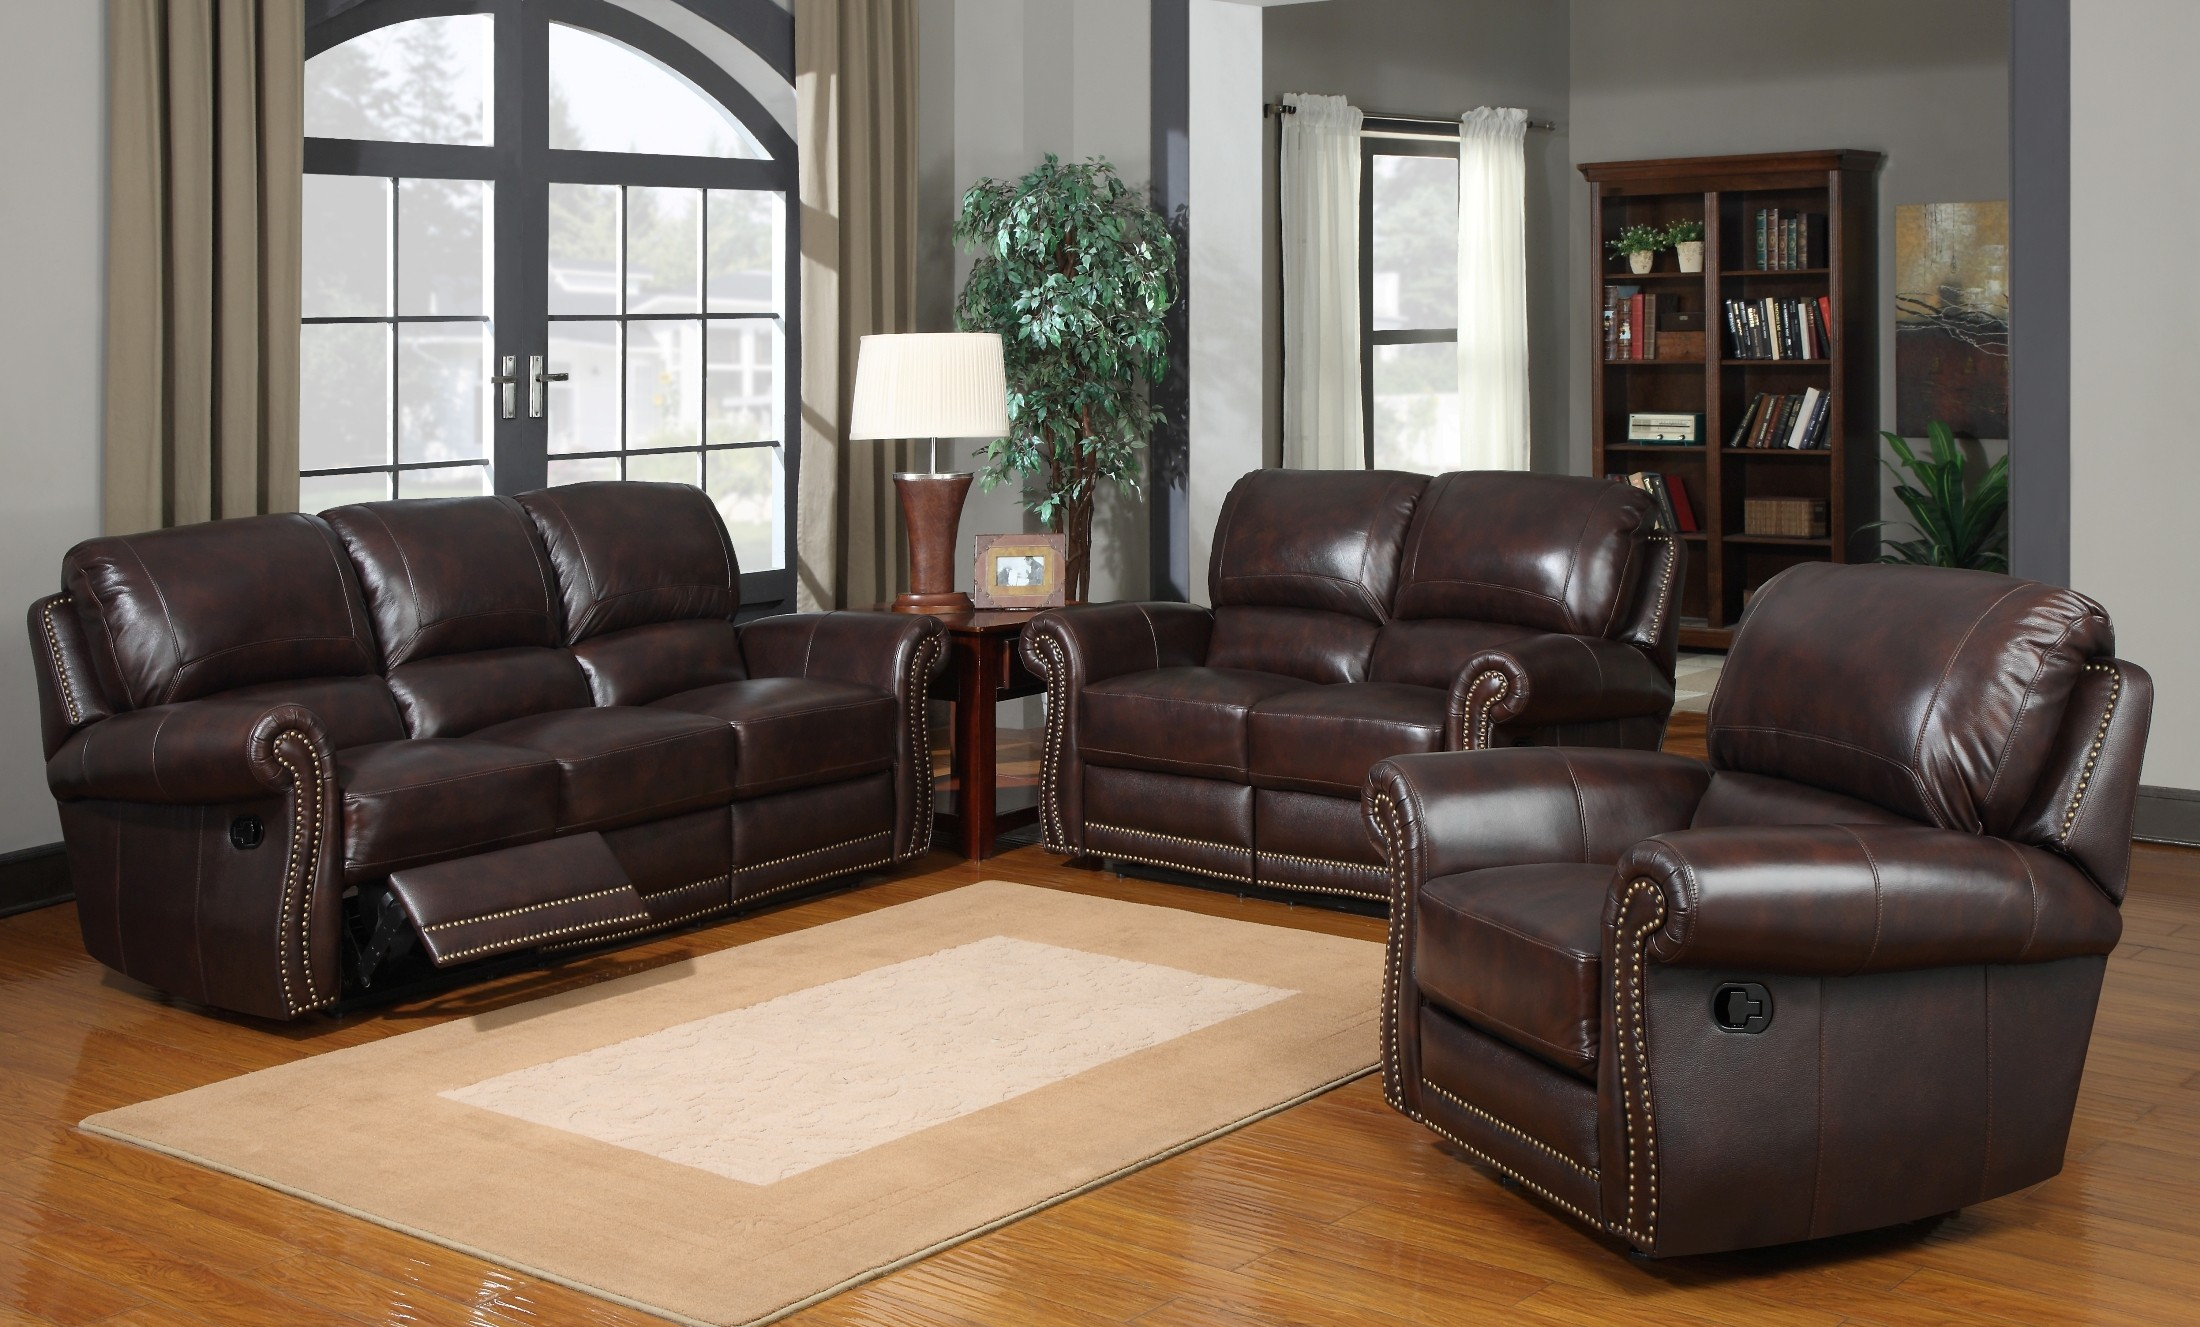 James tobacco reclining living room set from leather for J m furniture soho living room collection